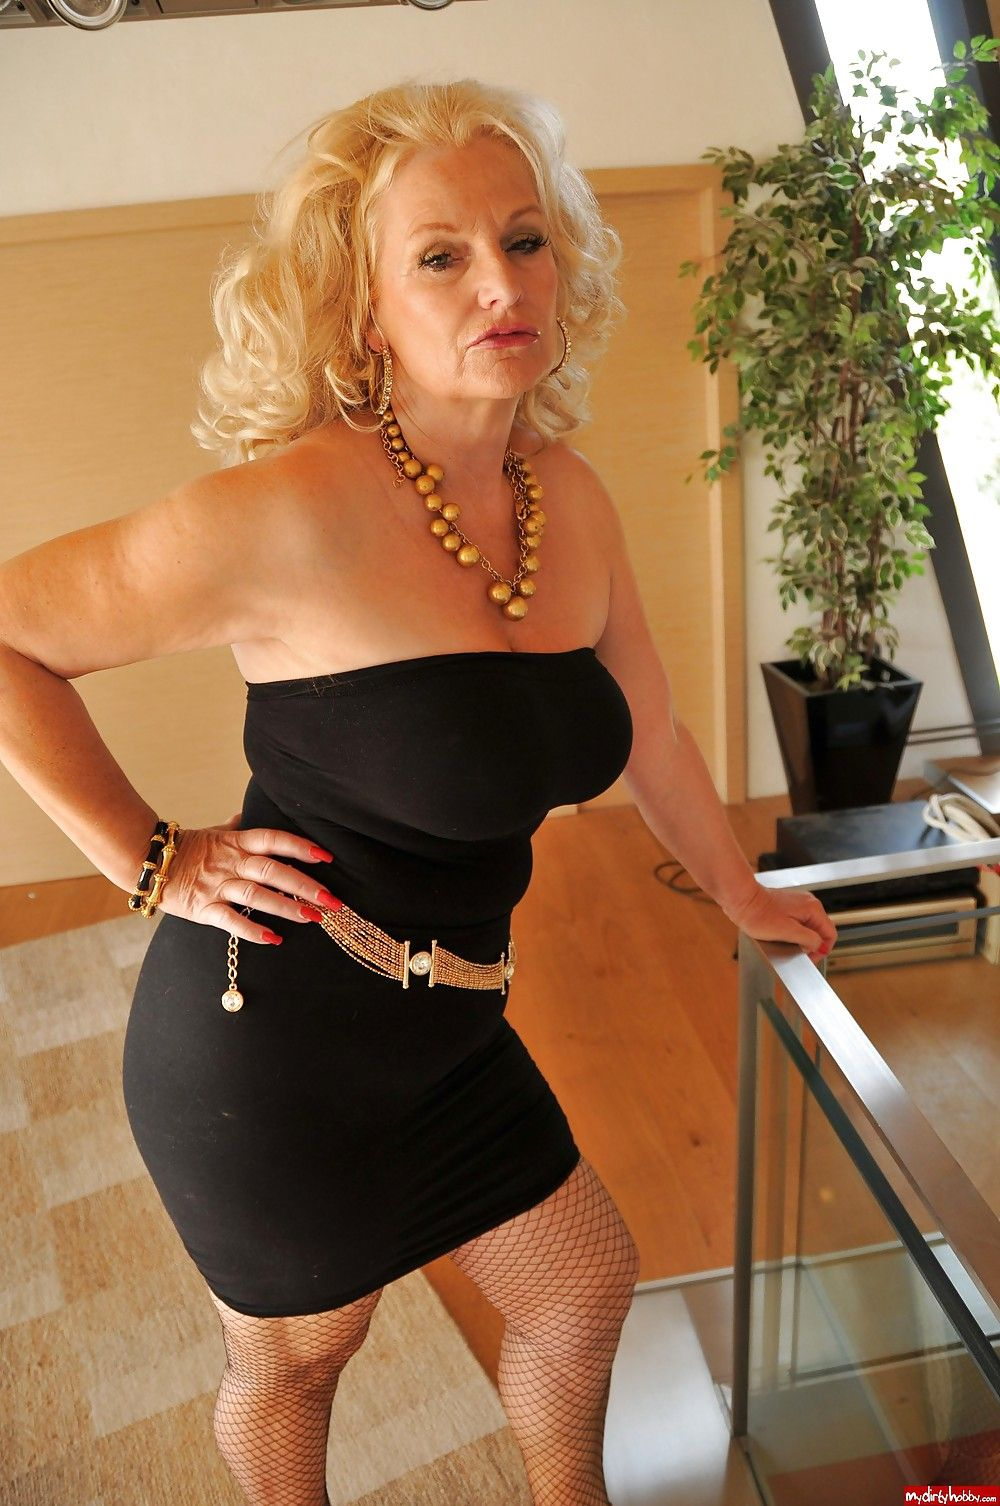 german gilf | hot mature ladies, milfs and gilfs | pinterest | woman